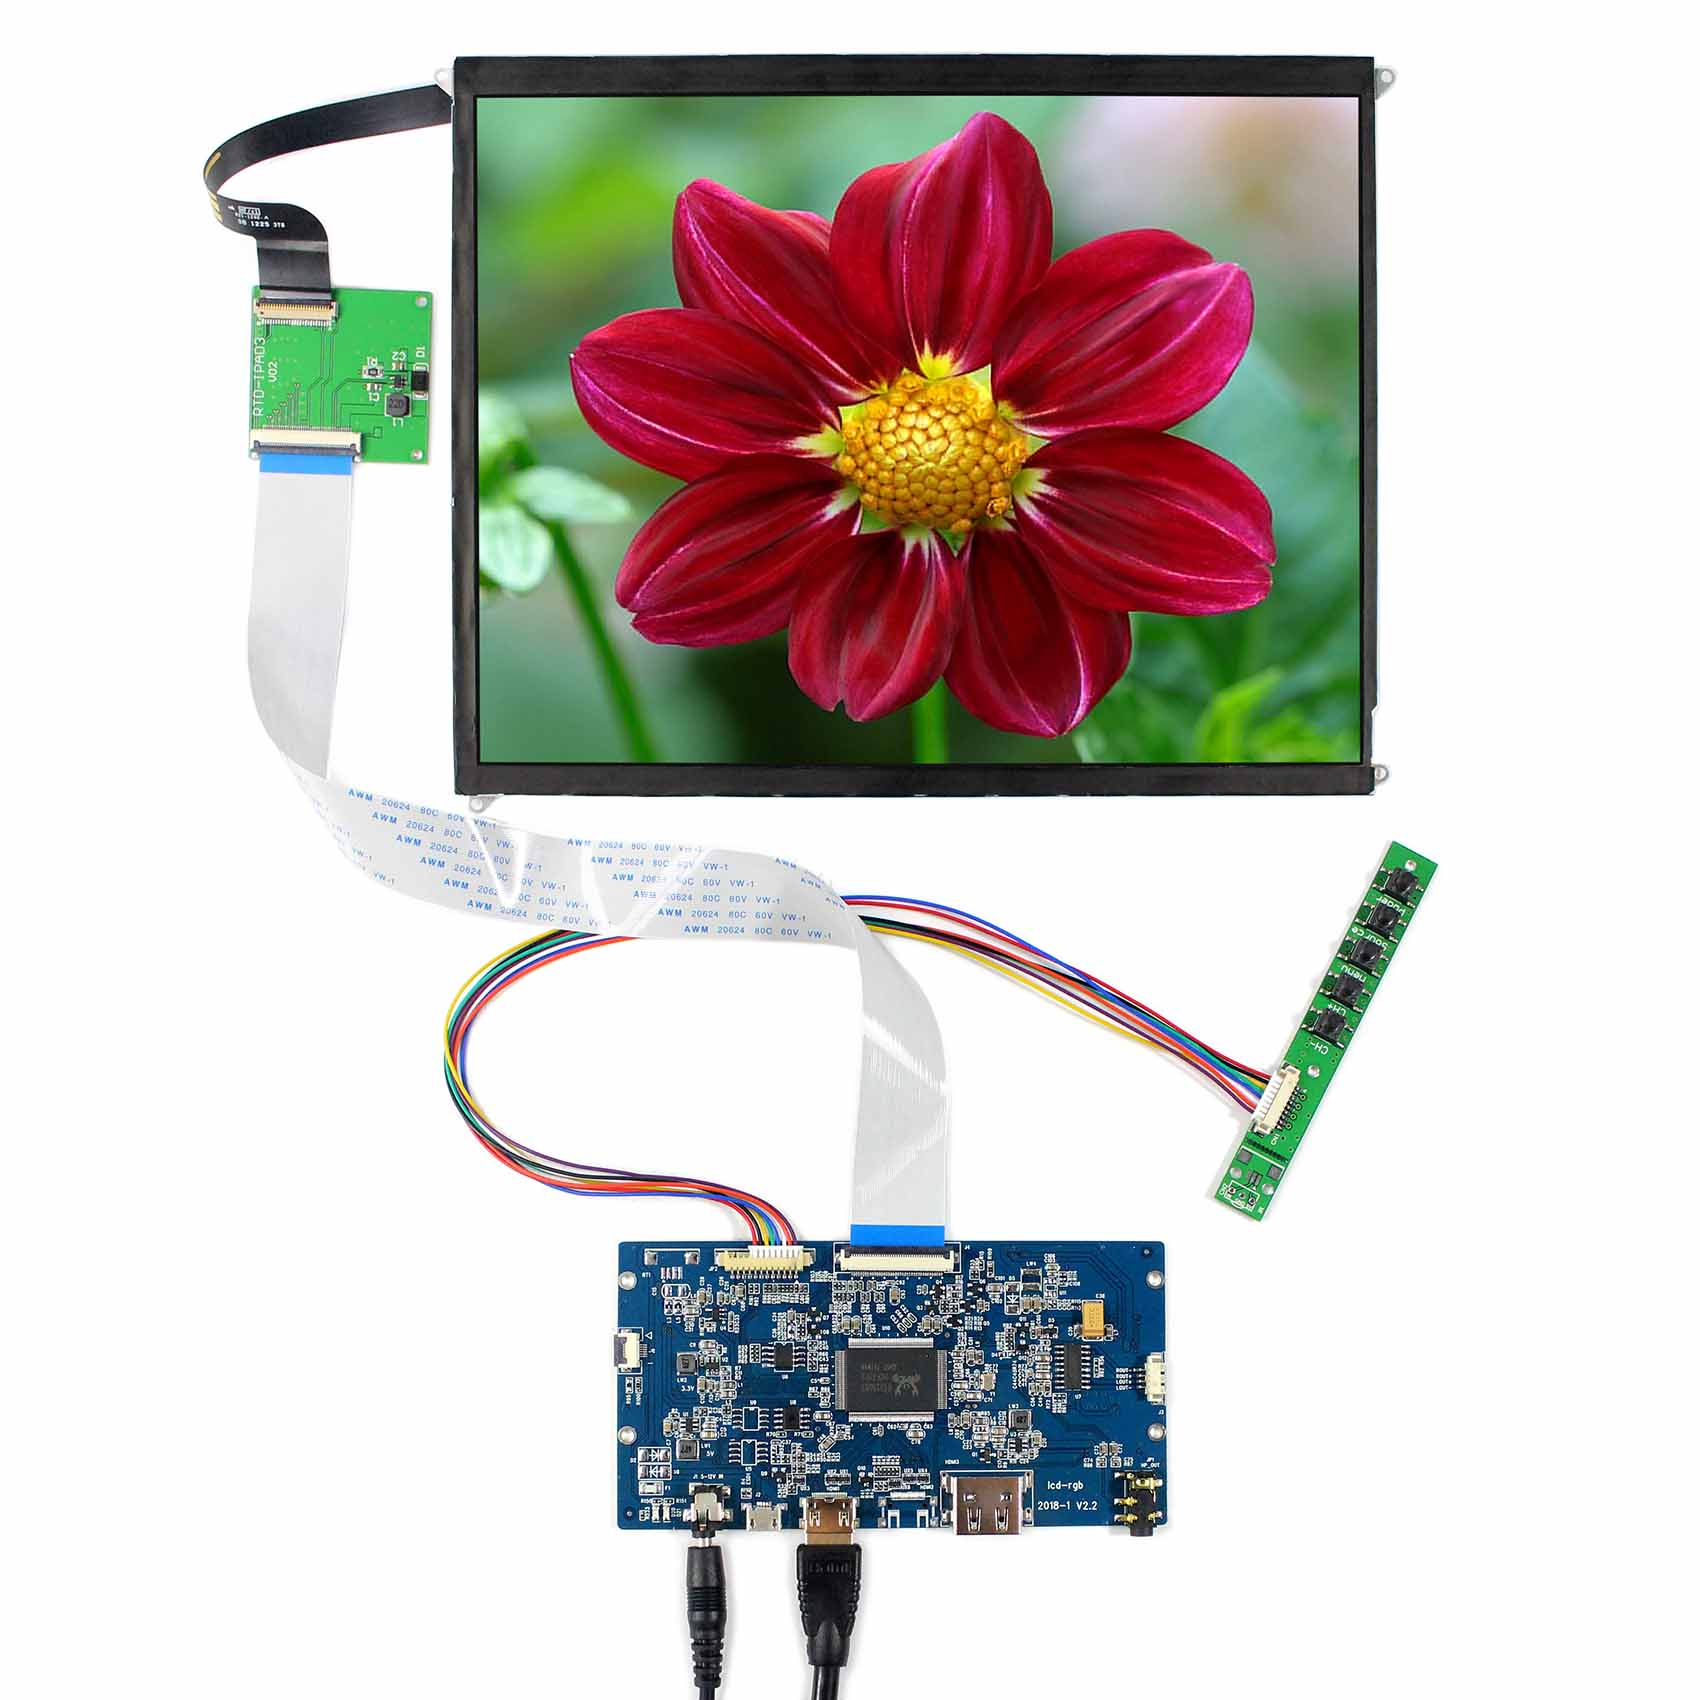 9.7inch LP097QX1 2048x1536 LCD Screen With HDMI LCD Driver Board9.7inch LP097QX1 2048x1536 LCD Screen With HDMI LCD Driver Board